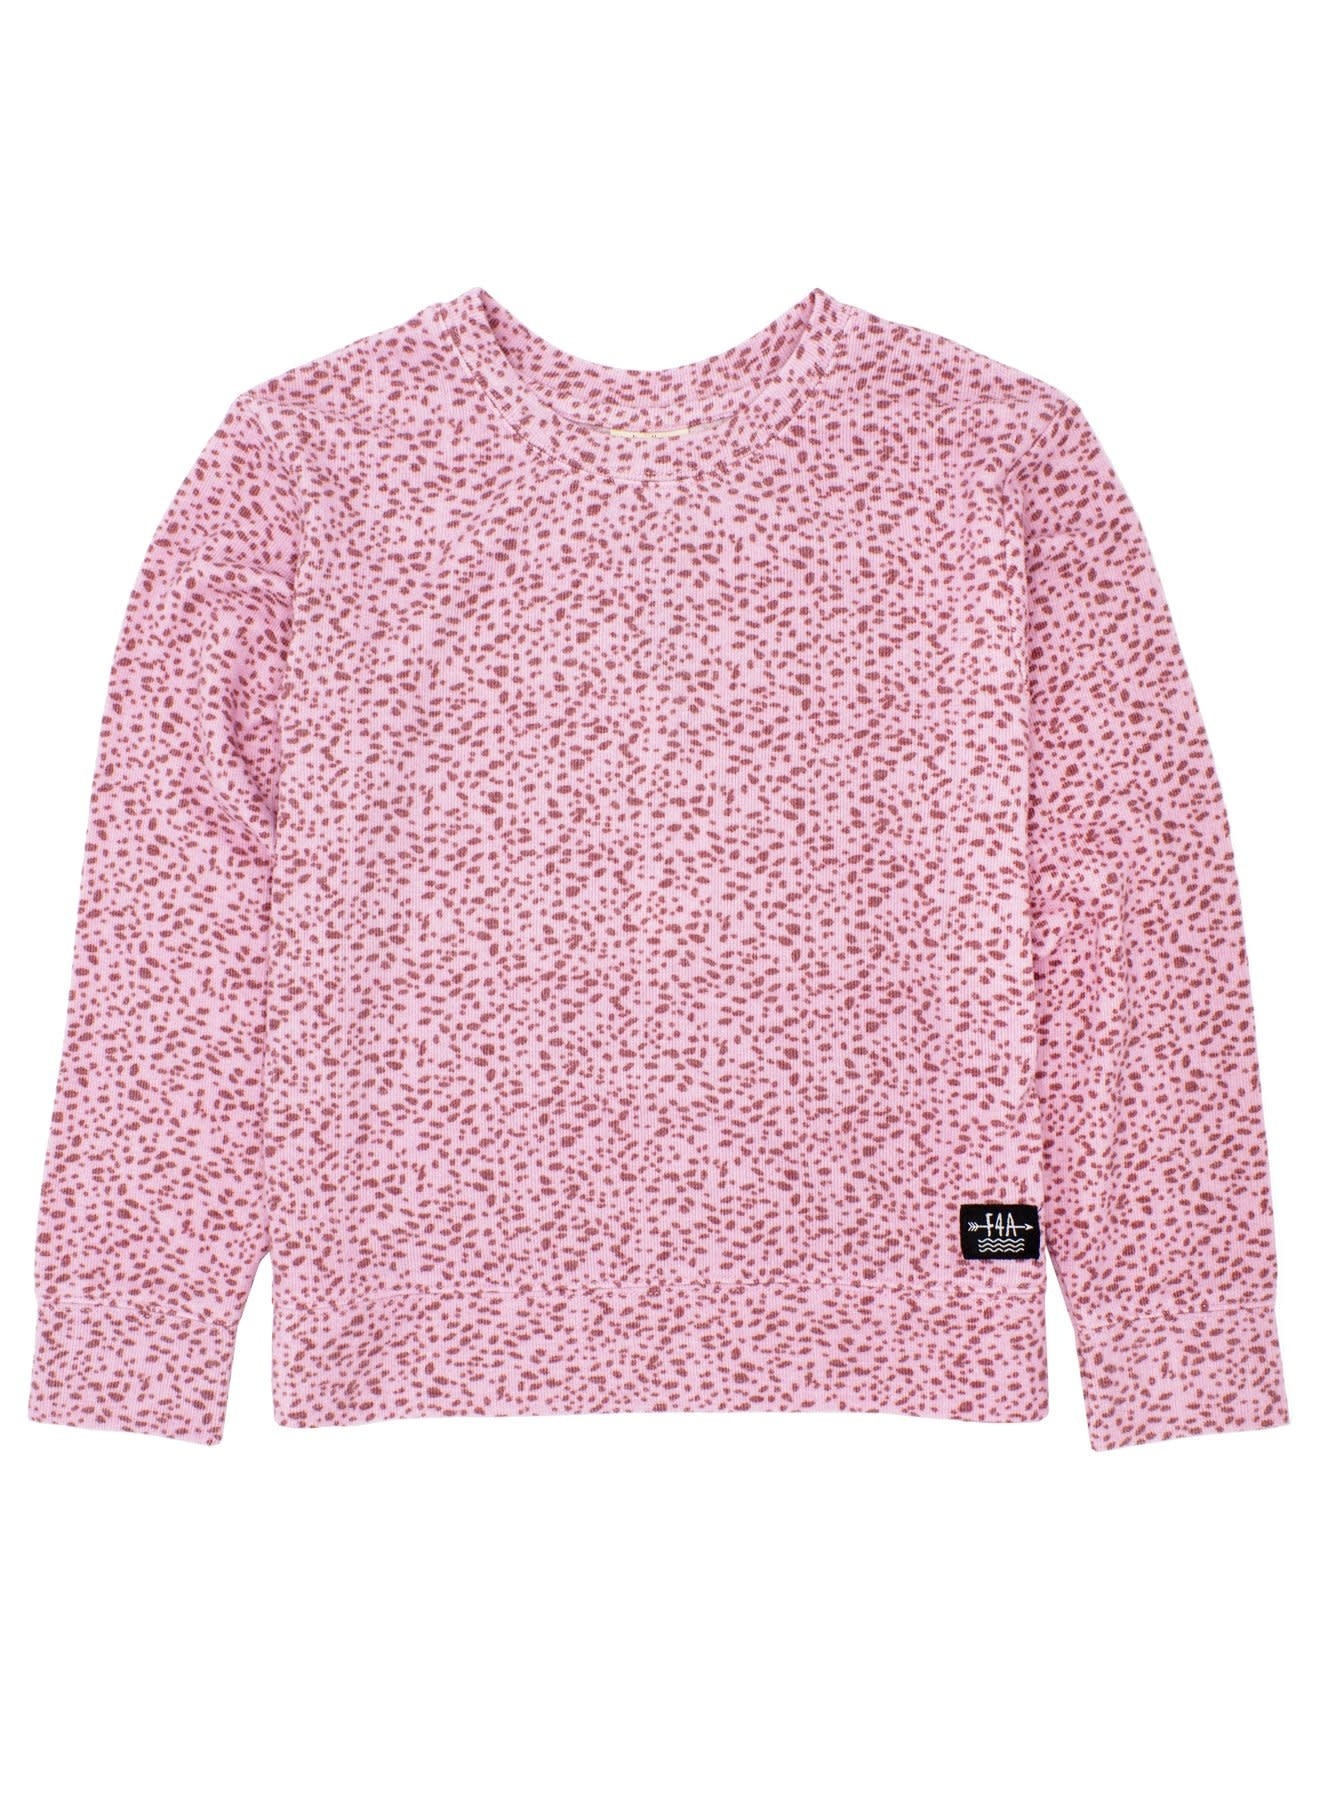 Feather 4 Arrow Chill Down Pullover Fairy Tale Pink